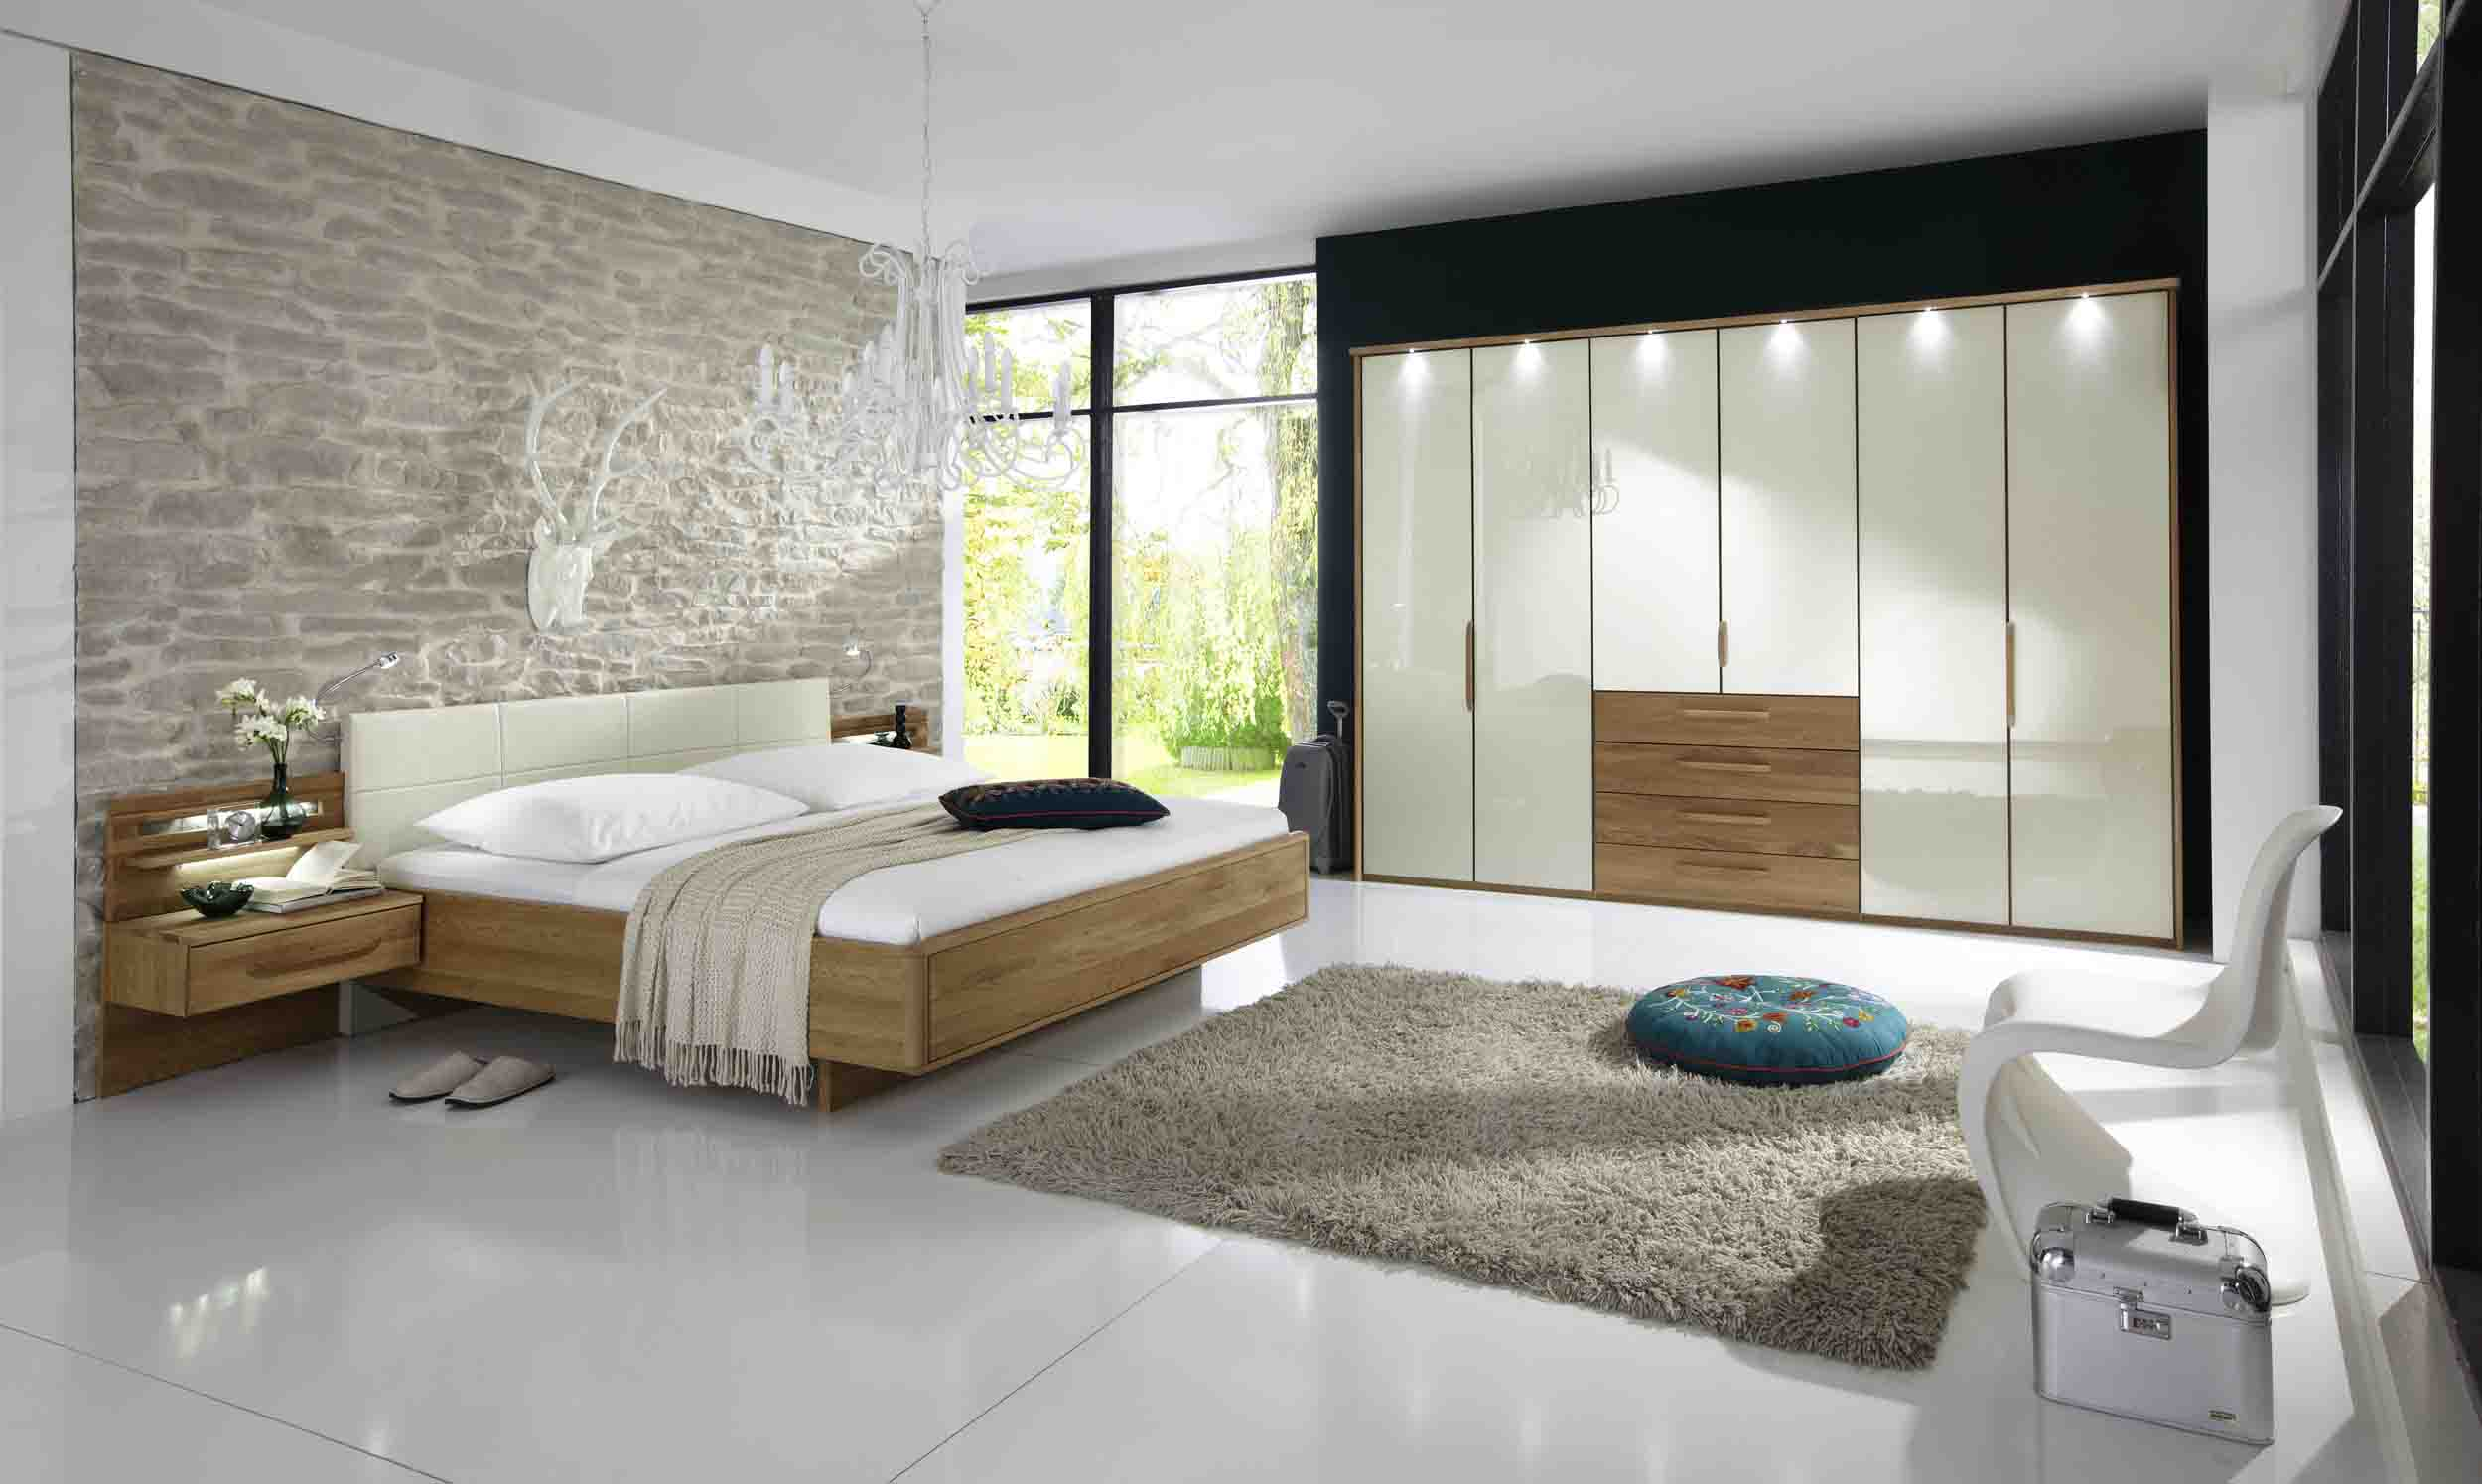 schlafzimmer wiemann torino g nstig massiva m. Black Bedroom Furniture Sets. Home Design Ideas